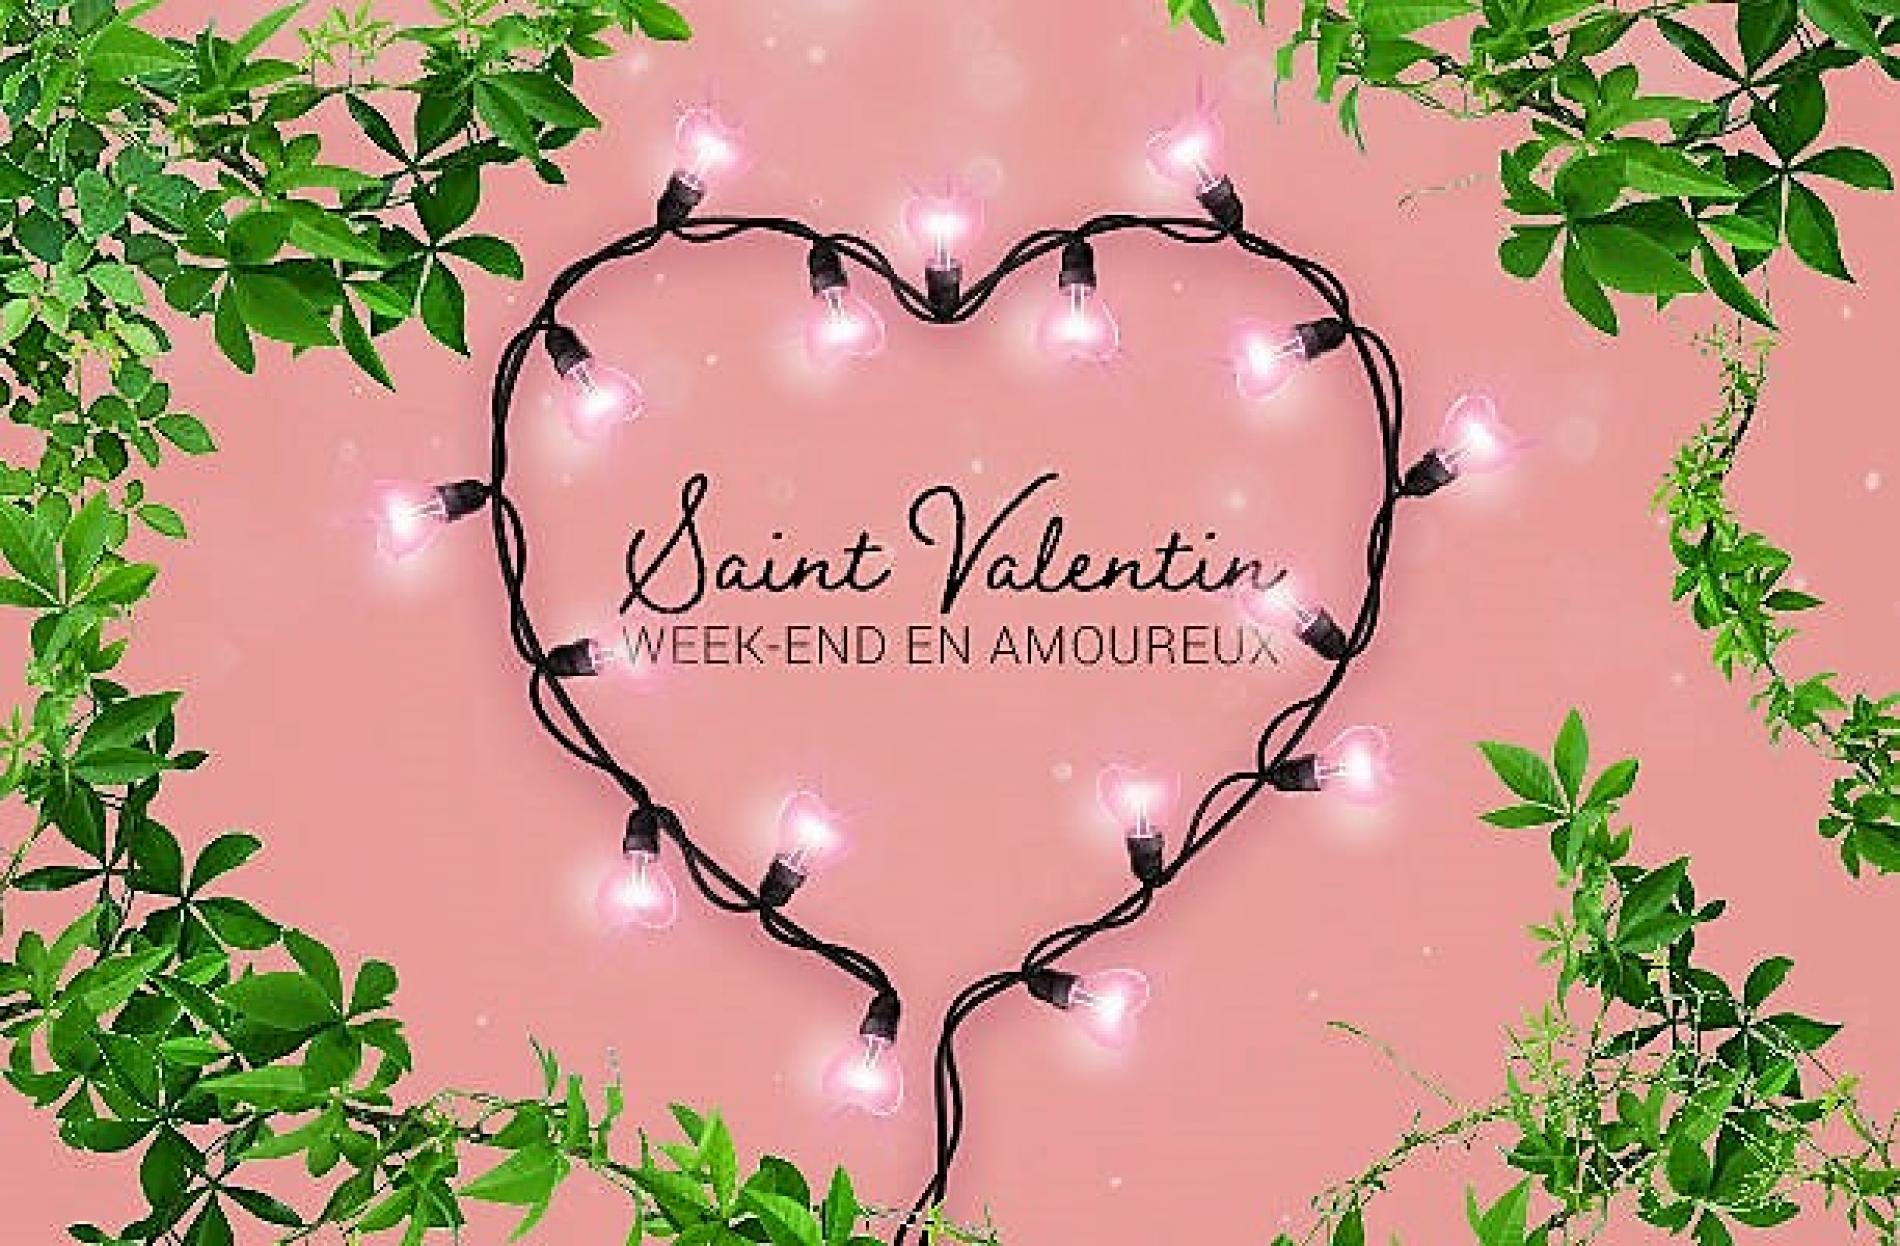 Offre  st valentin   2 nuits